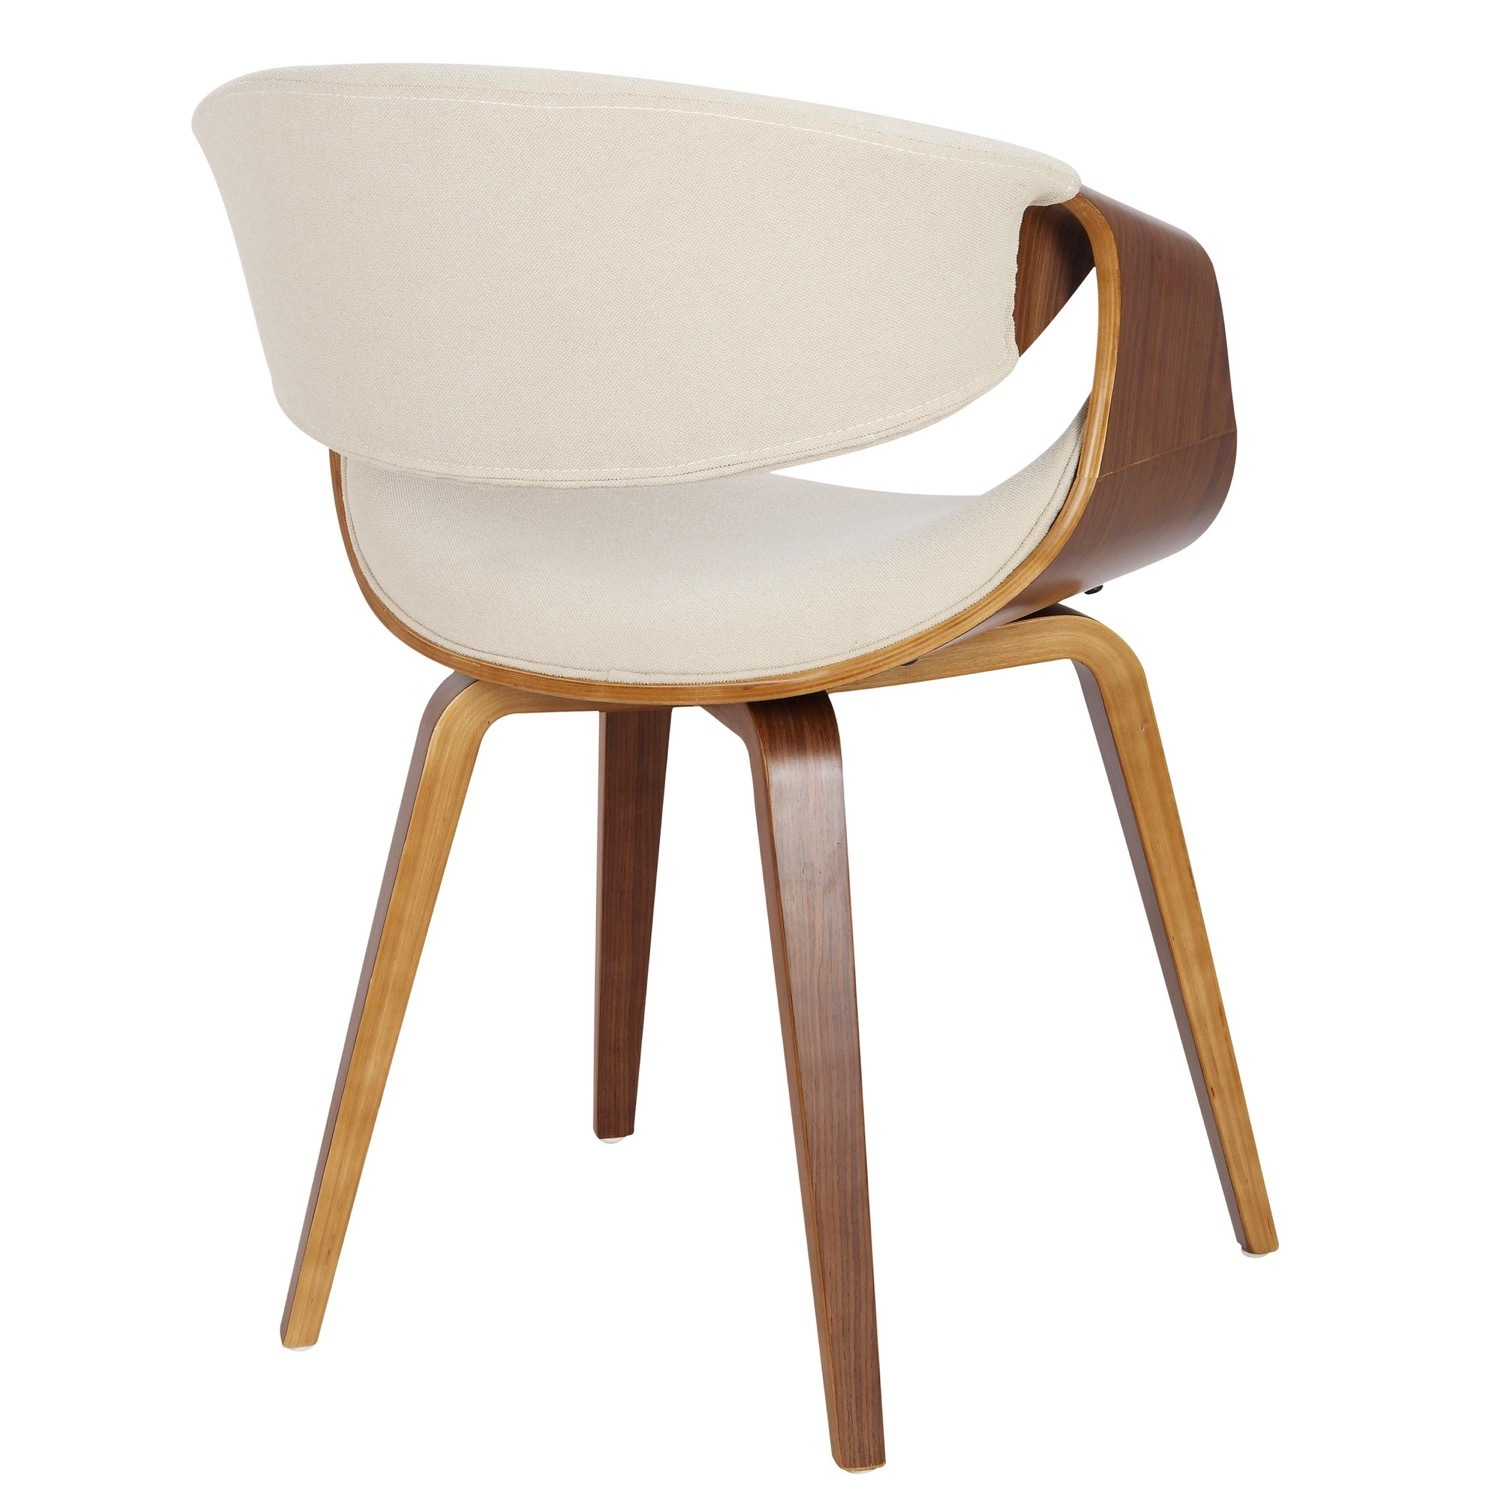 Mid Century Modern Dining Chairs - image-2